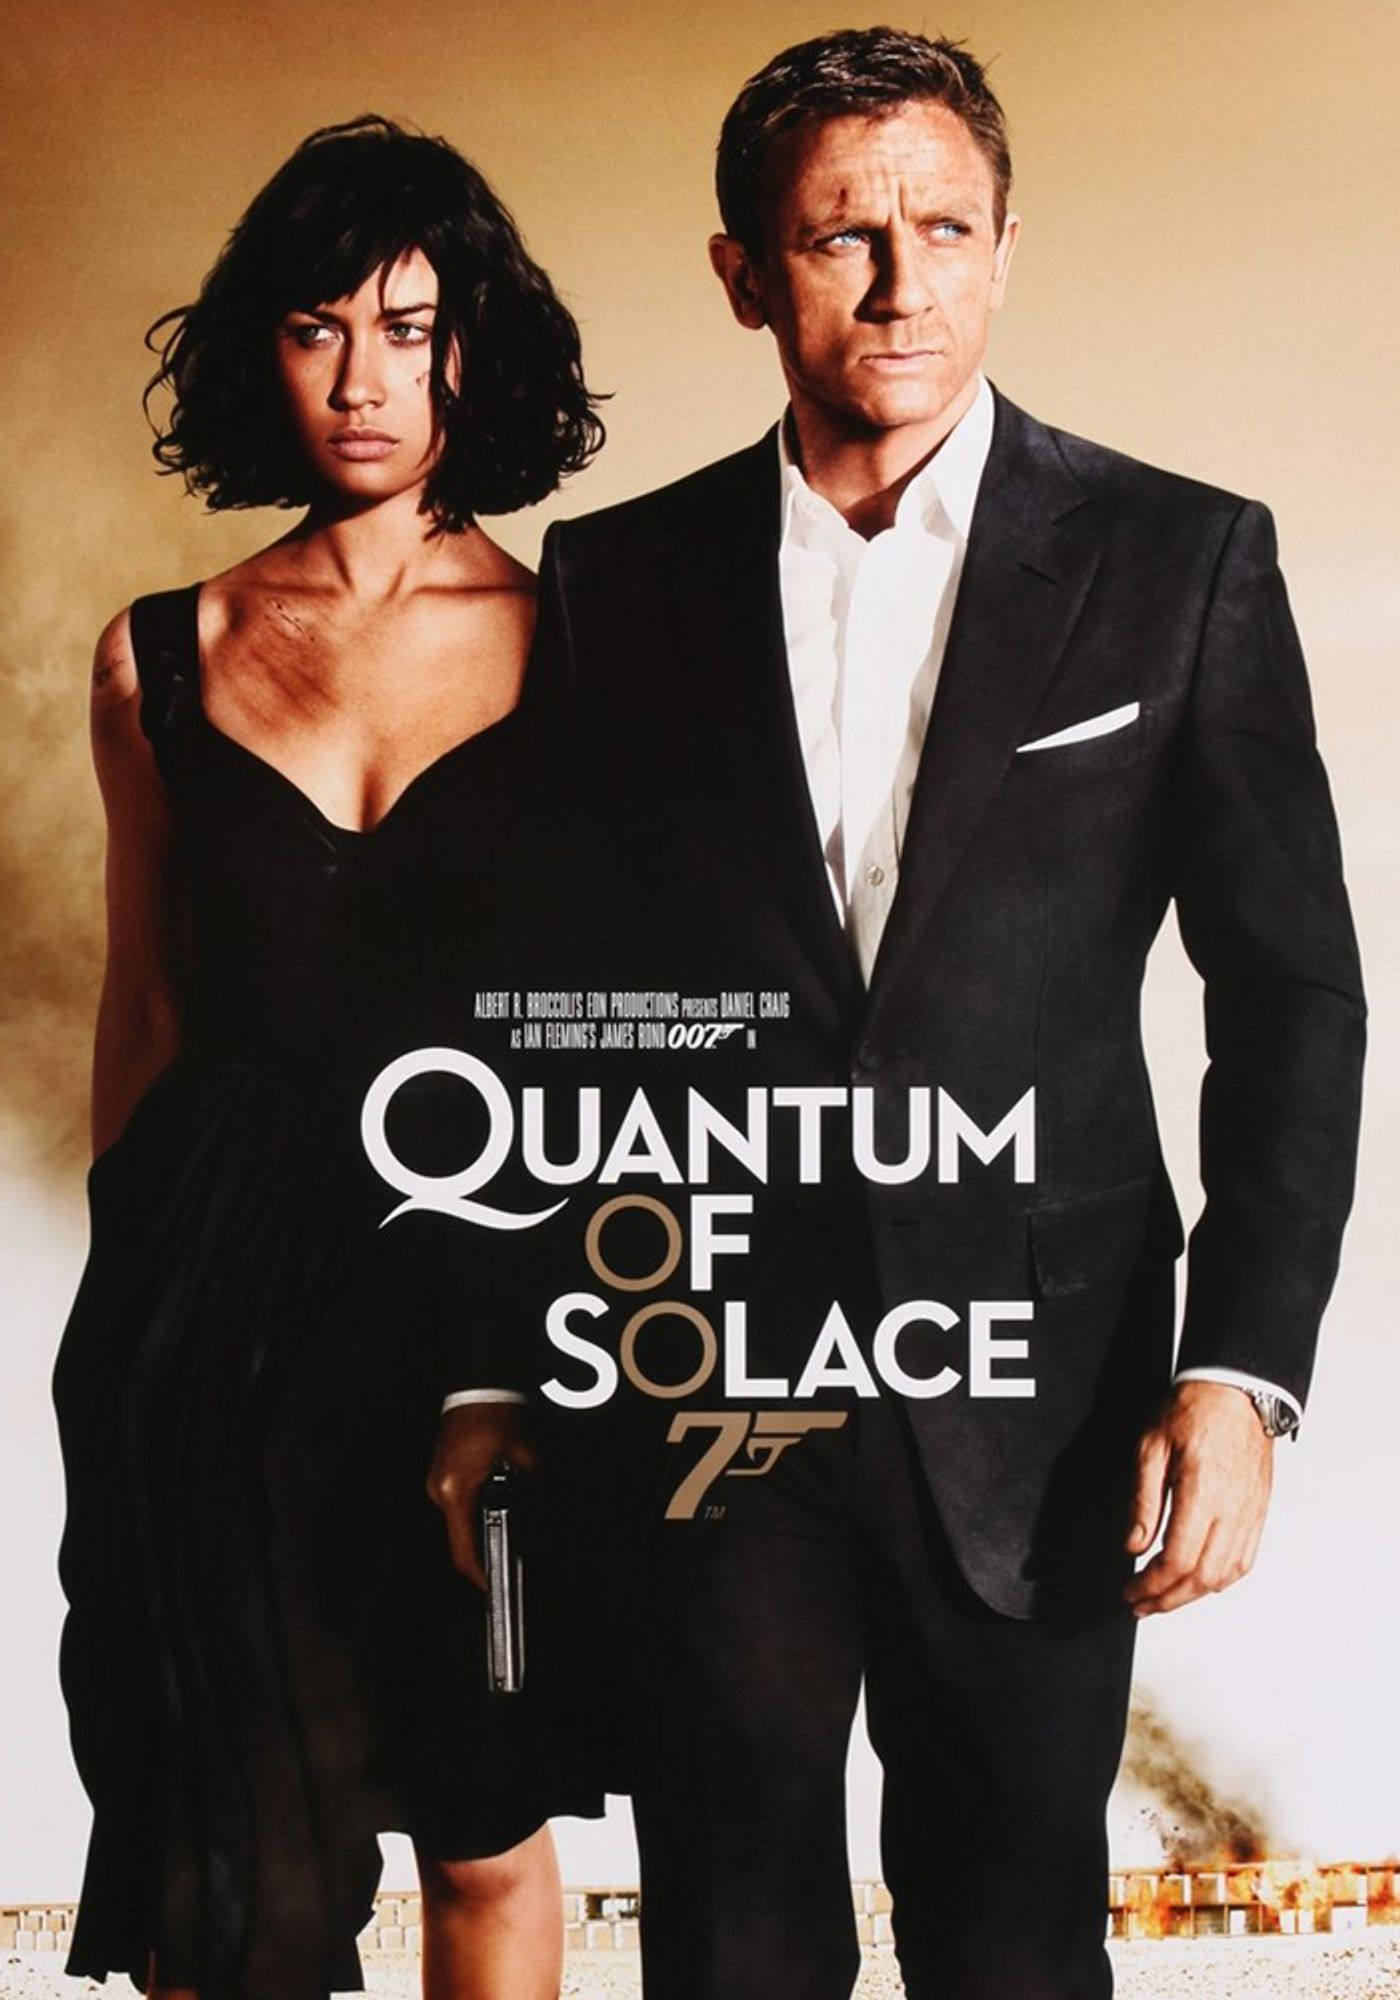 Quantum of Solace (V.O.)